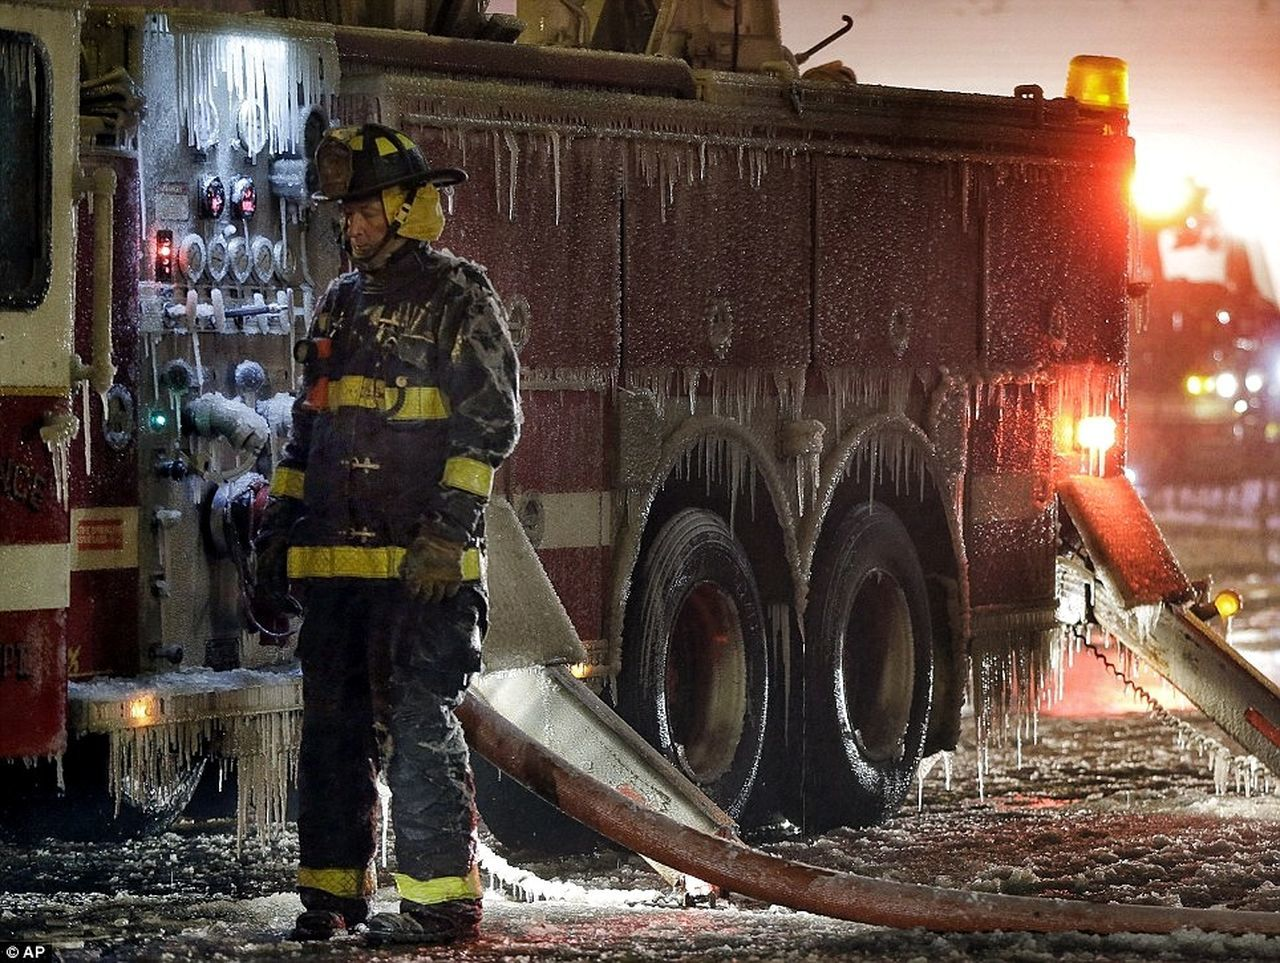 Not my shot but this has been everyday this week. High temps in the 20's, lows sub zero. Working Teamwork Responsibility Sacrafice  Winter In Michigan The Calling Commitment Honor Pride Service Ice Firefighter Cold Temperature Apparatus